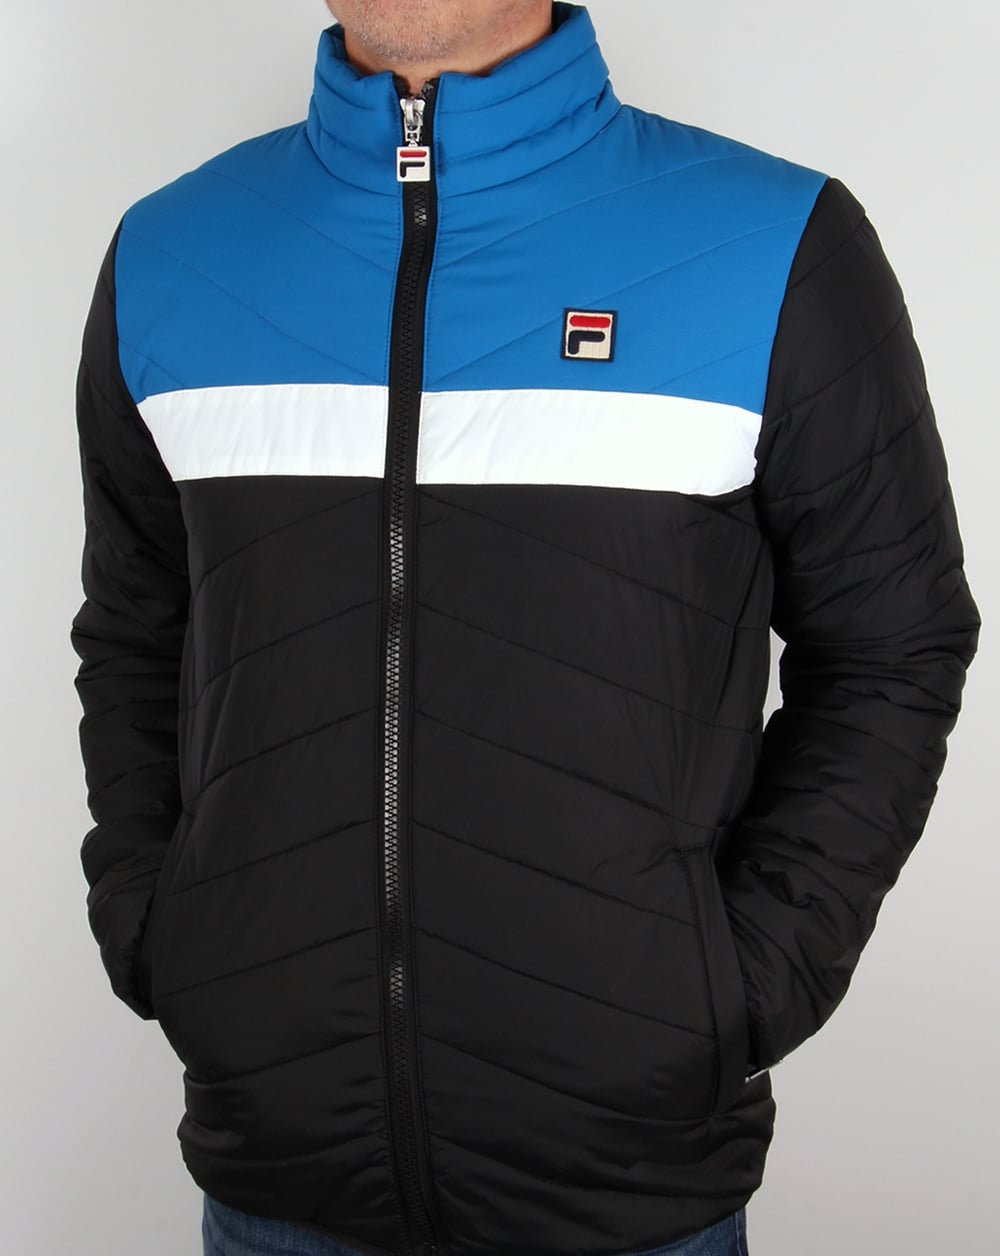 Fila Vintage 80s Ski Jacket Black/Blue